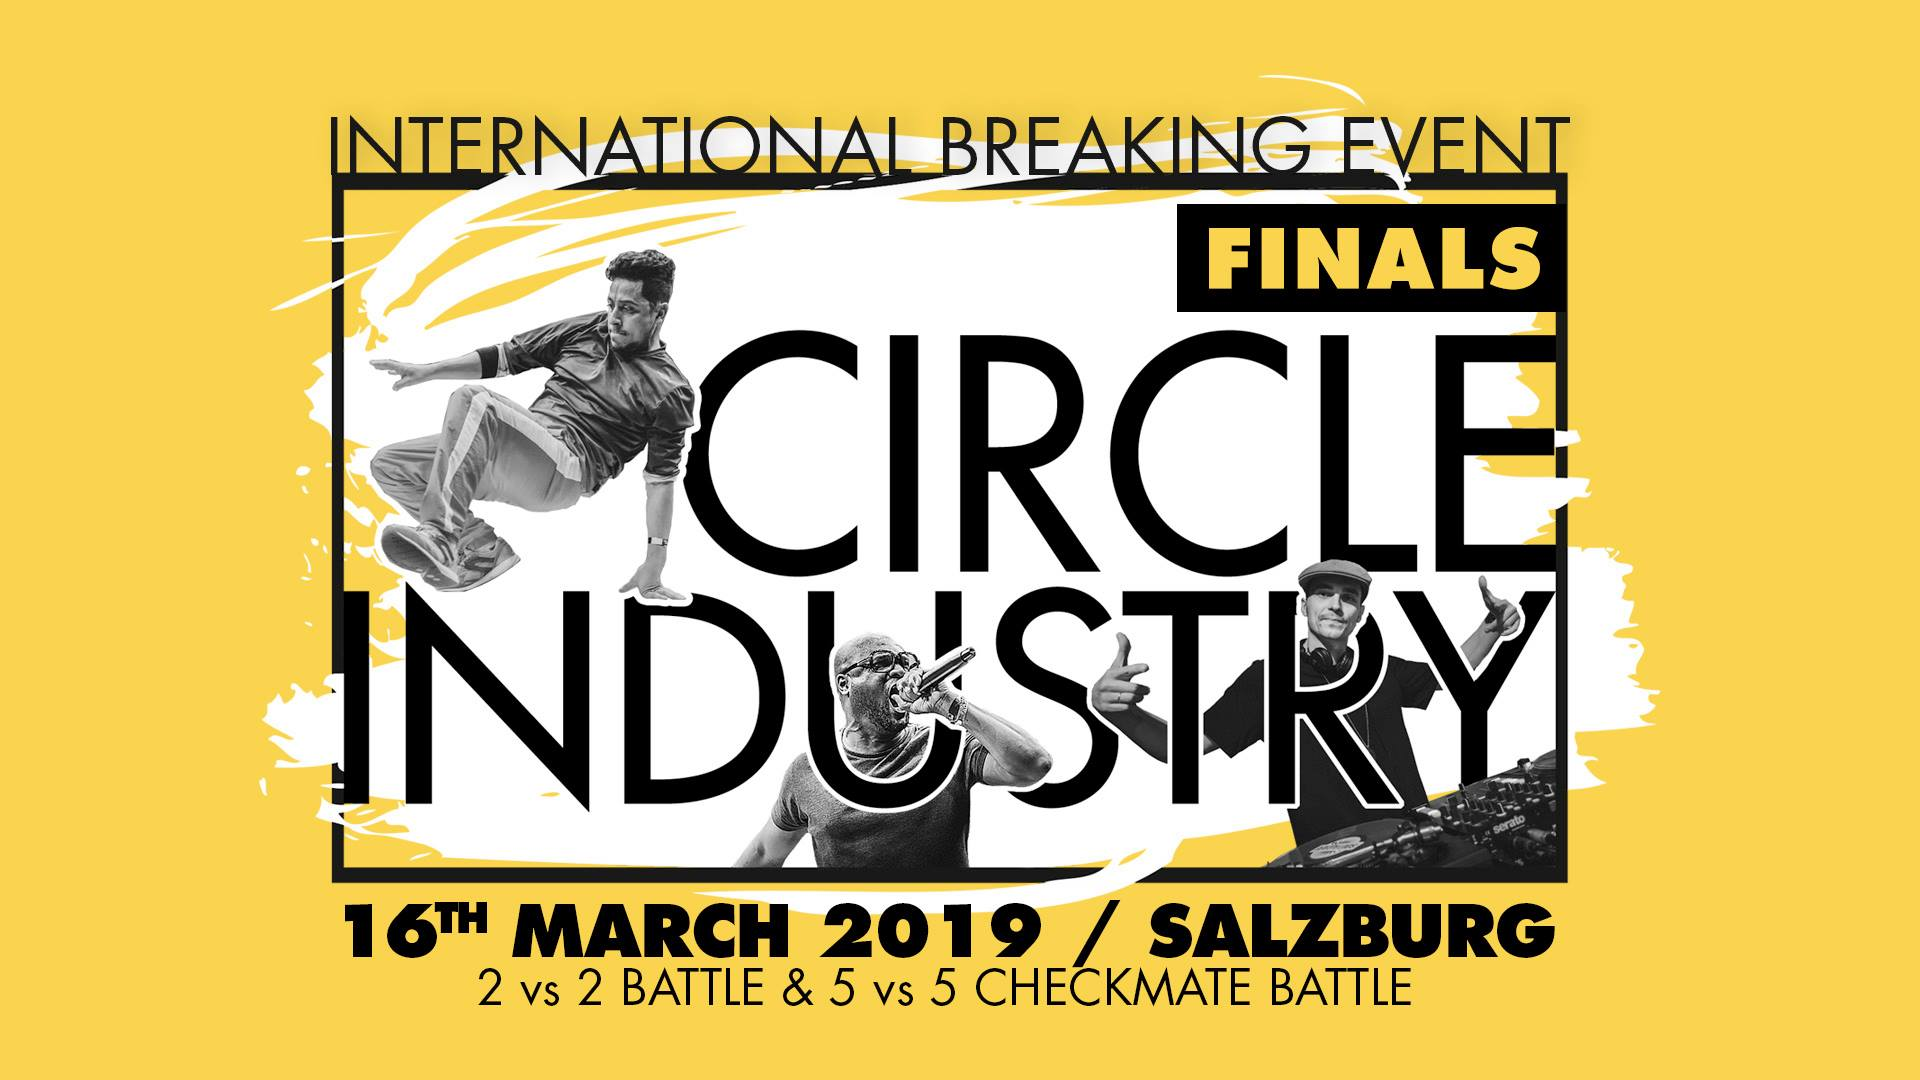 Circle Industry Final on March 16 2019